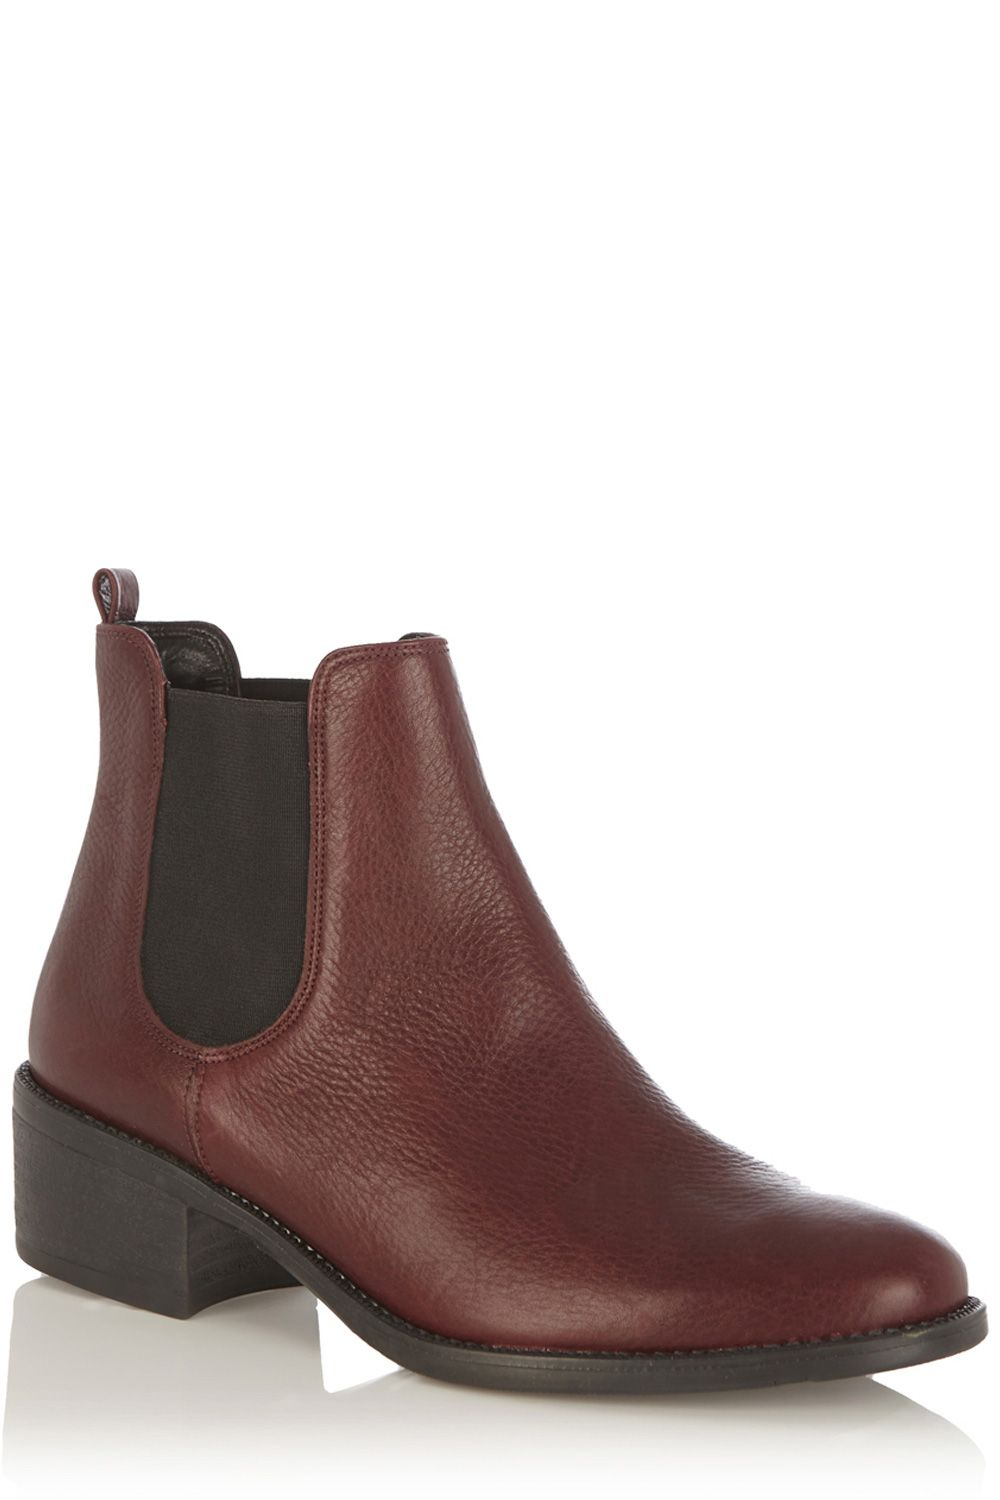 Cammie Chelsea boots